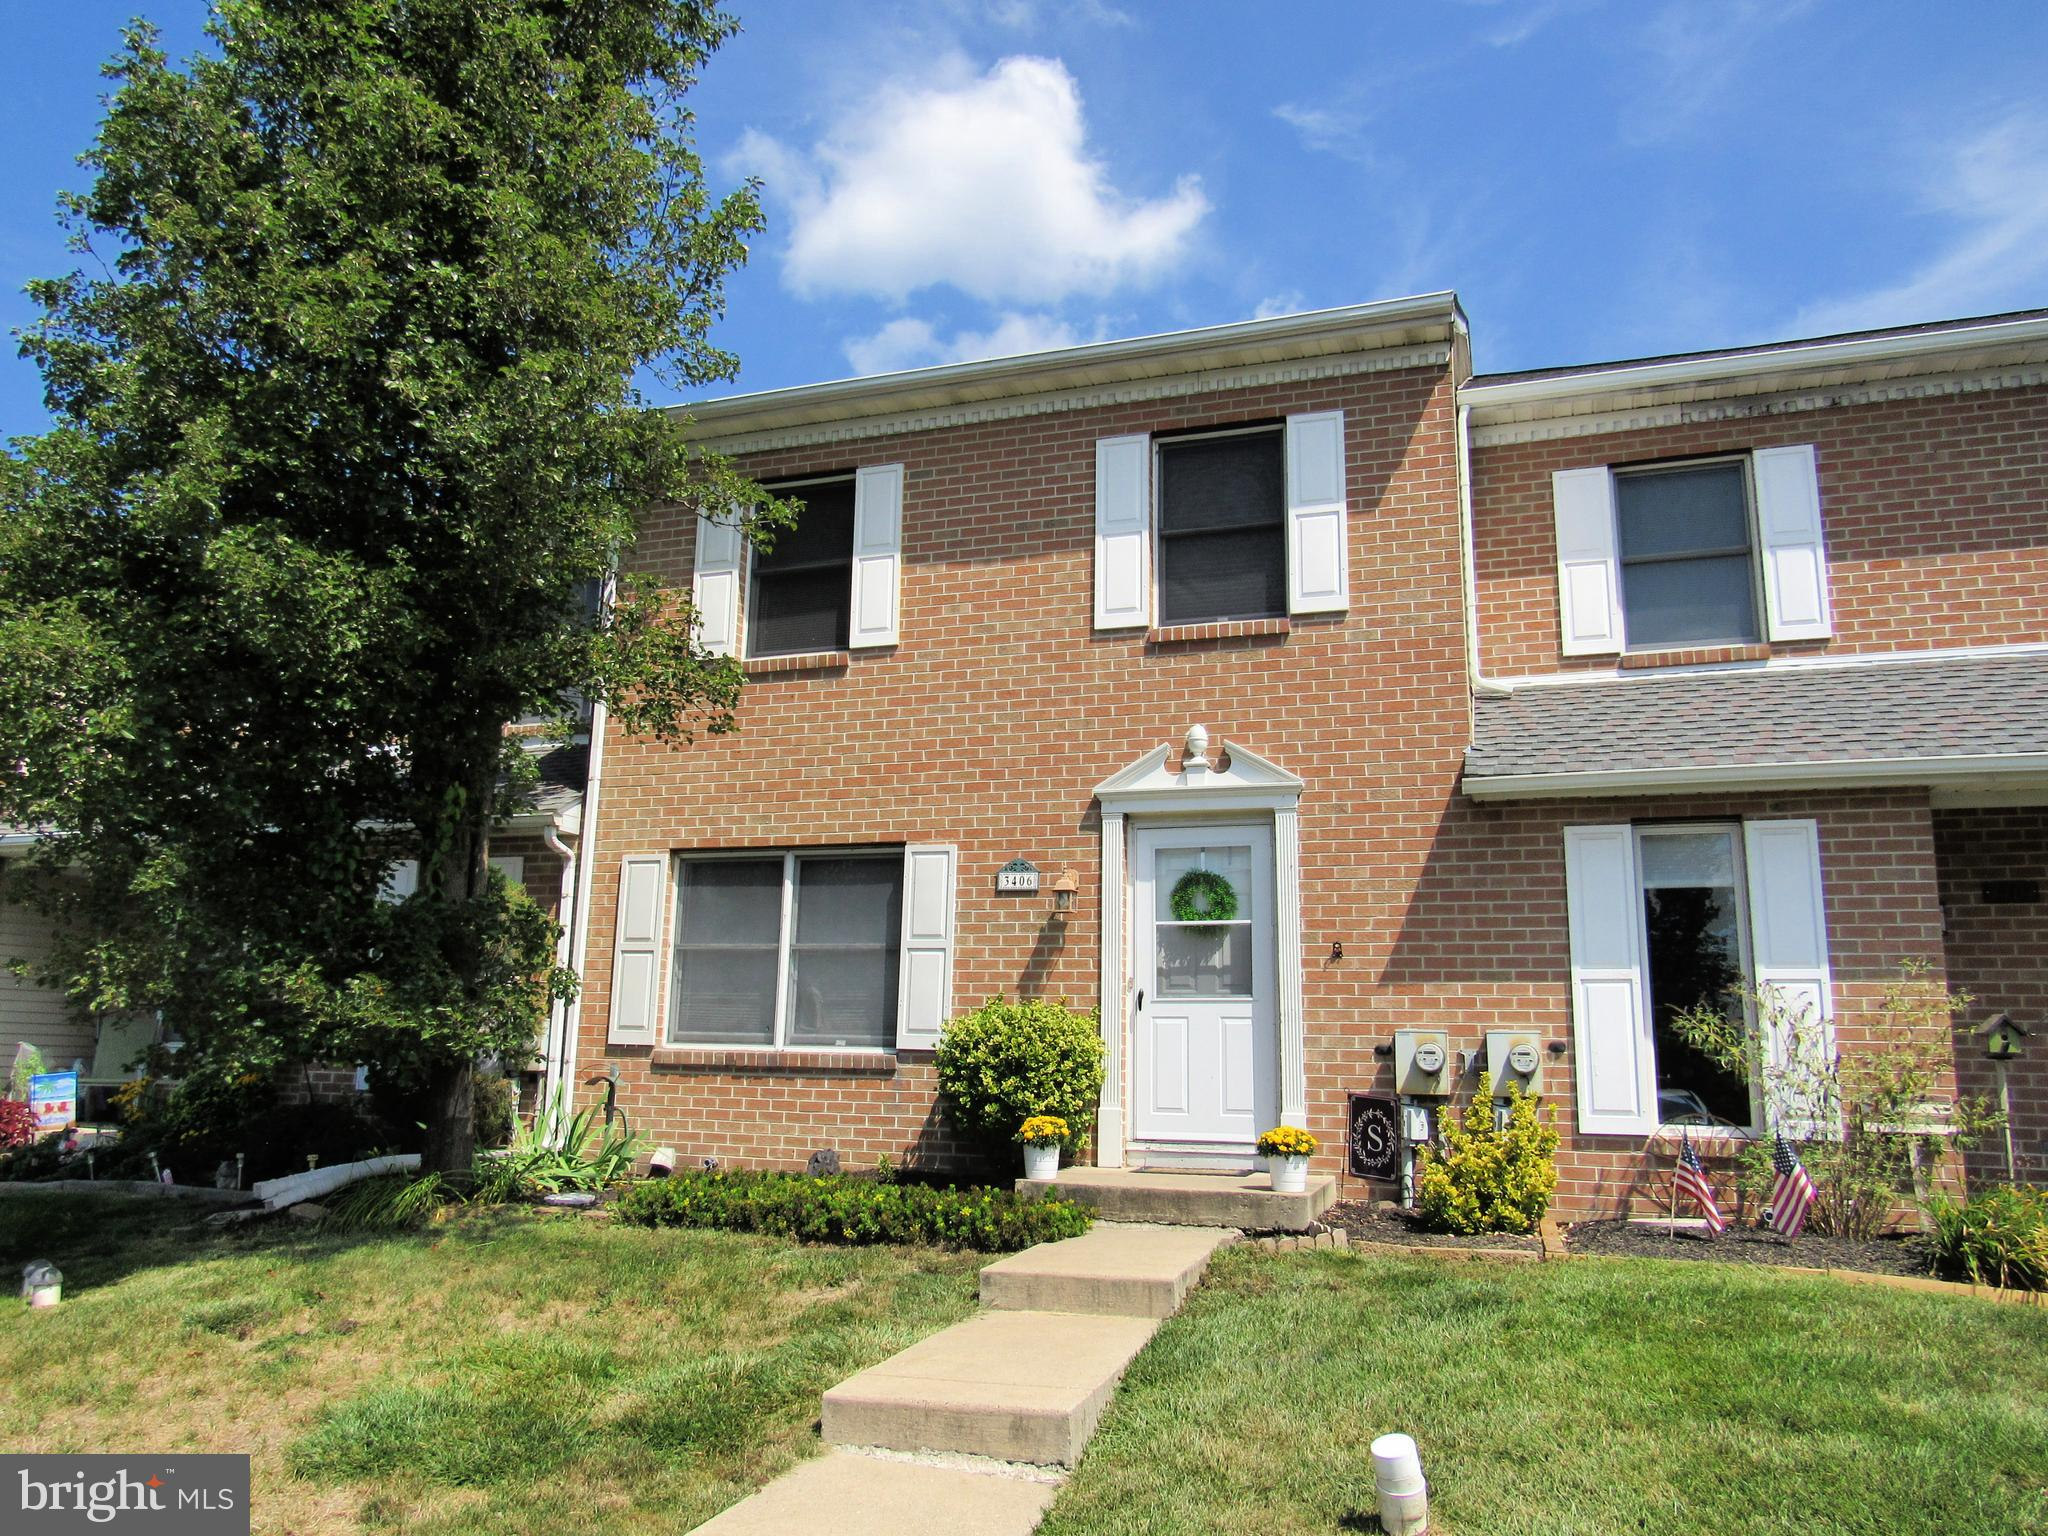 Welcome home to this well-maintained townhome in the desirable Perkiomen Crossing neighborhood! The first level has a spacious living room that opens up to a formal dining room, a kitchen with plenty of counter space and an eat-in area. A half bath completes the main level. There is also a deck off of the kitchen where you can enjoy gatherings around the chiminea. The upper level has a large master suite with his and her closets, and private bath. A full hallway bath and two other bedrooms with spacious closets are also on this level. The basement is finished and includes shelving units for plenty of storage space. Updated floors throughout and all appliances are included.